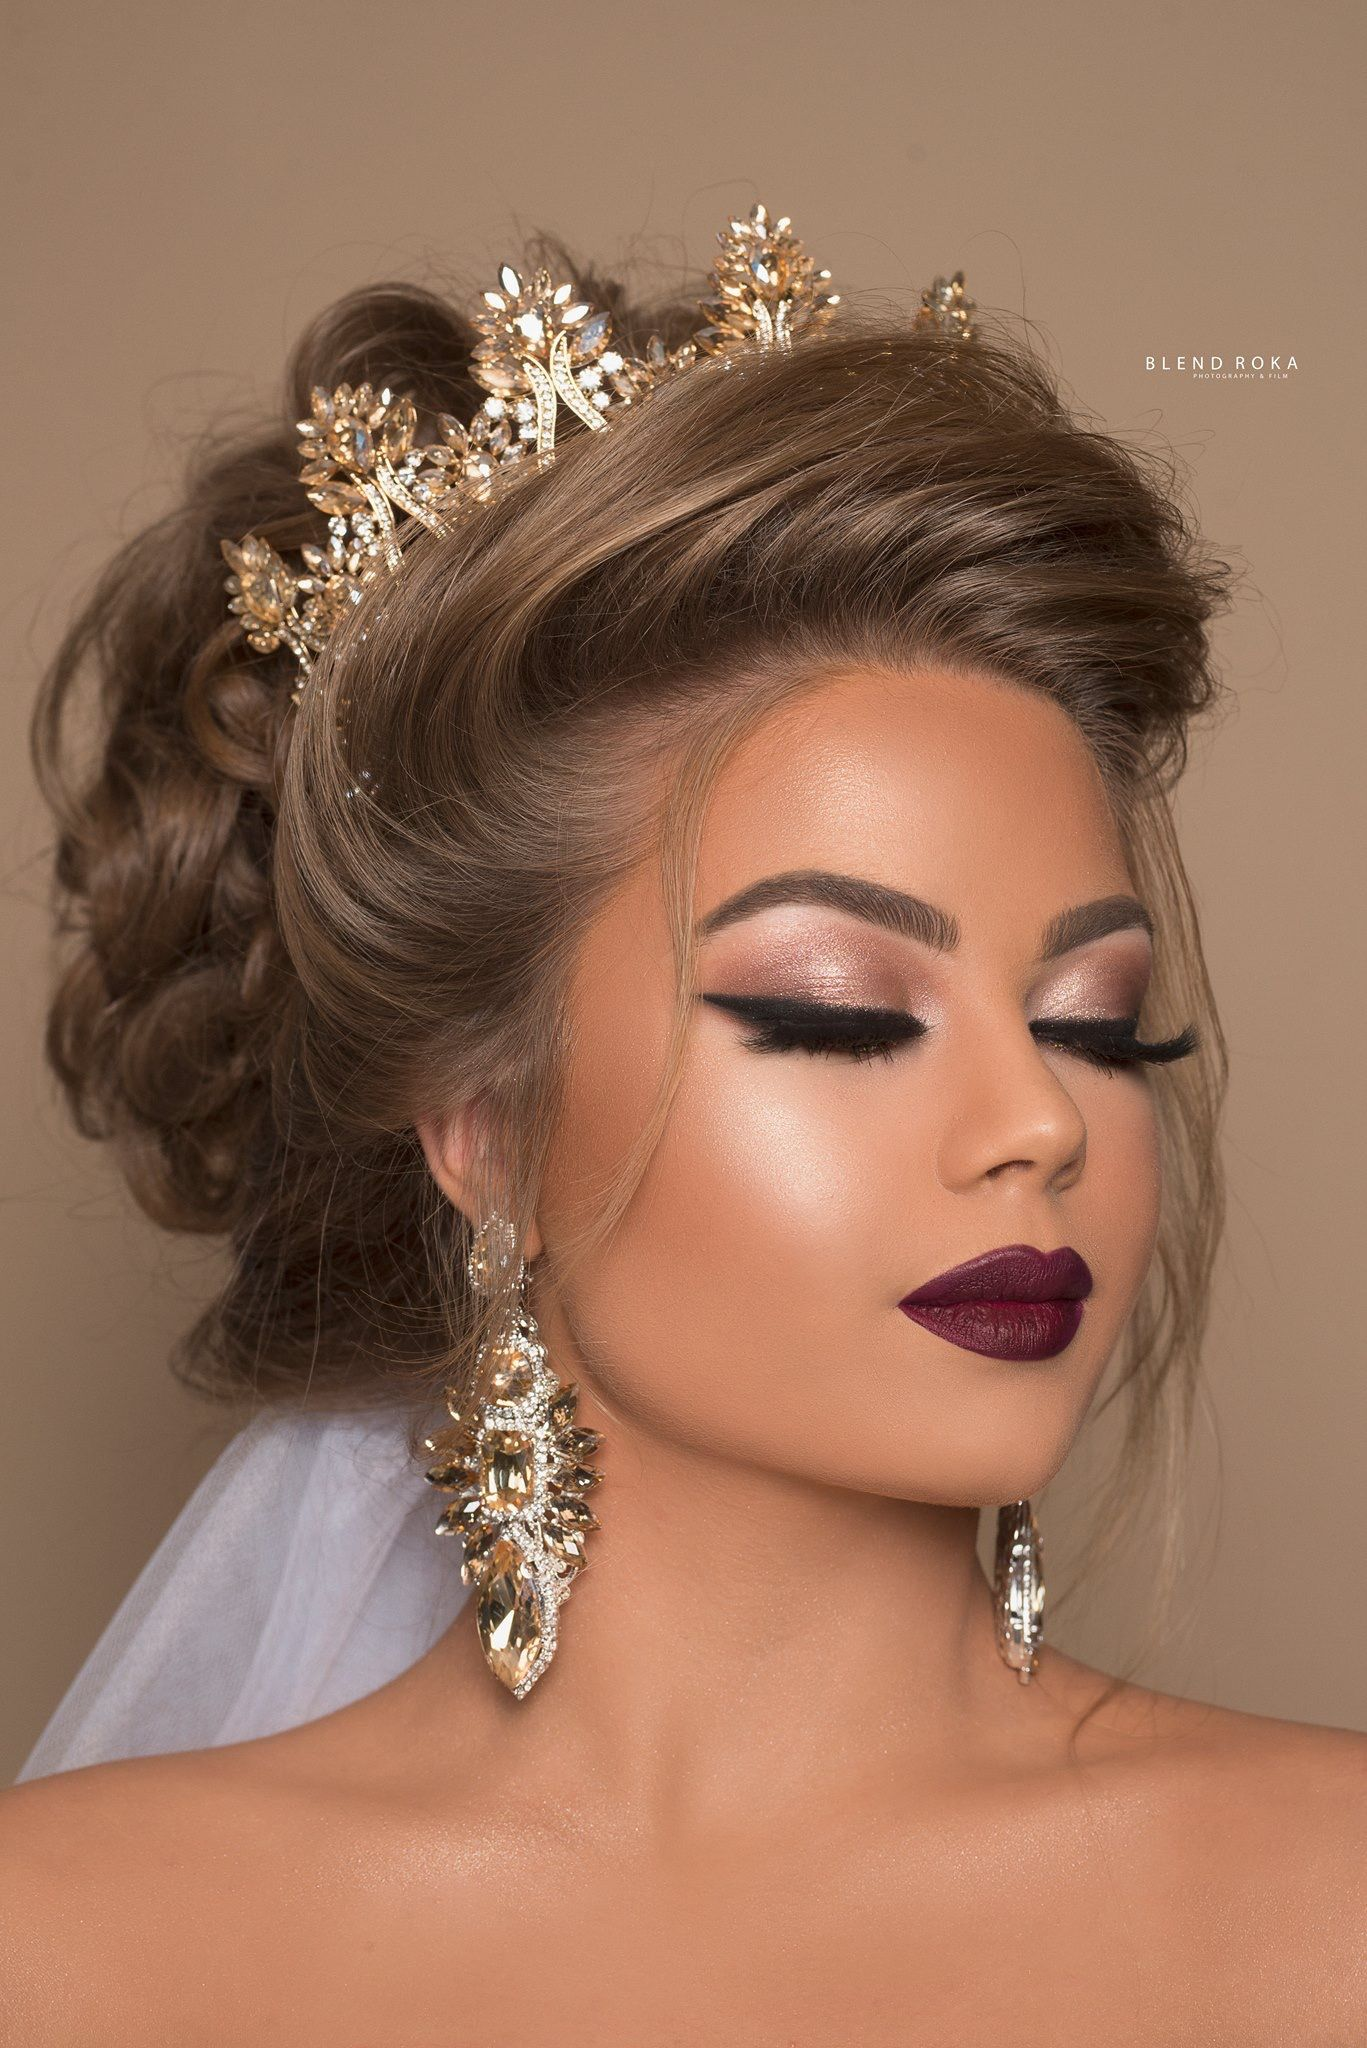 Wedding Hair And Makeup Bridal Hair And Makeup Wedding Hair And Makeup Beautiful Bridal Hair